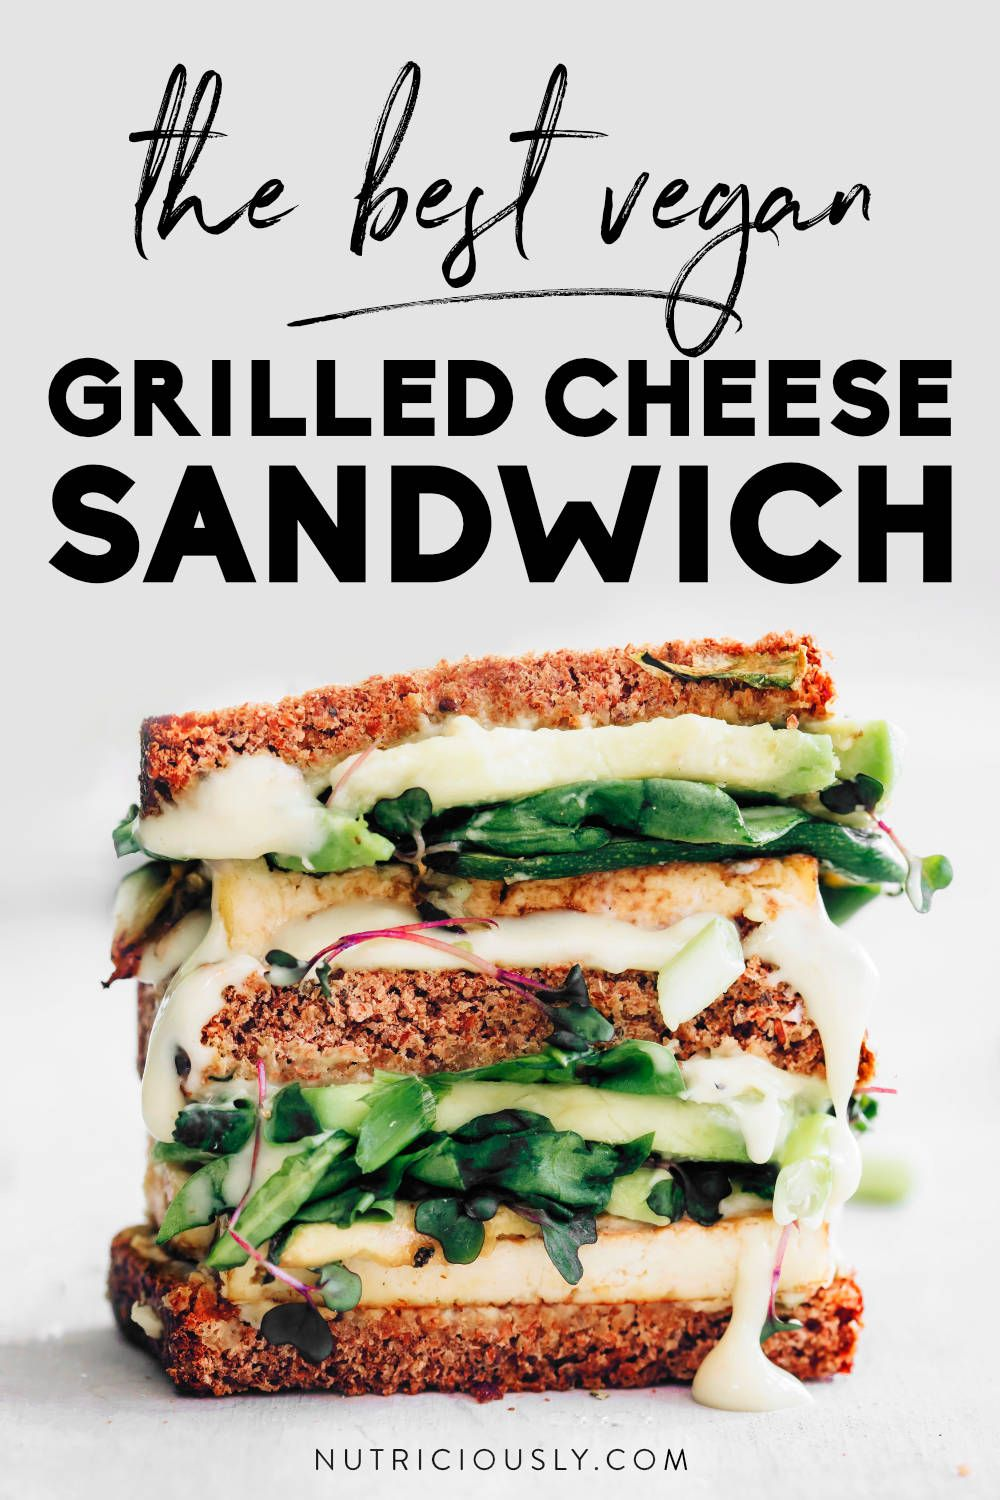 Healthy Vegan Grilled Cheese Sandwich With Avocado Spinach Recipe In 2020 Whole Foods Vegan Vegan Grilling Healthy Vegan